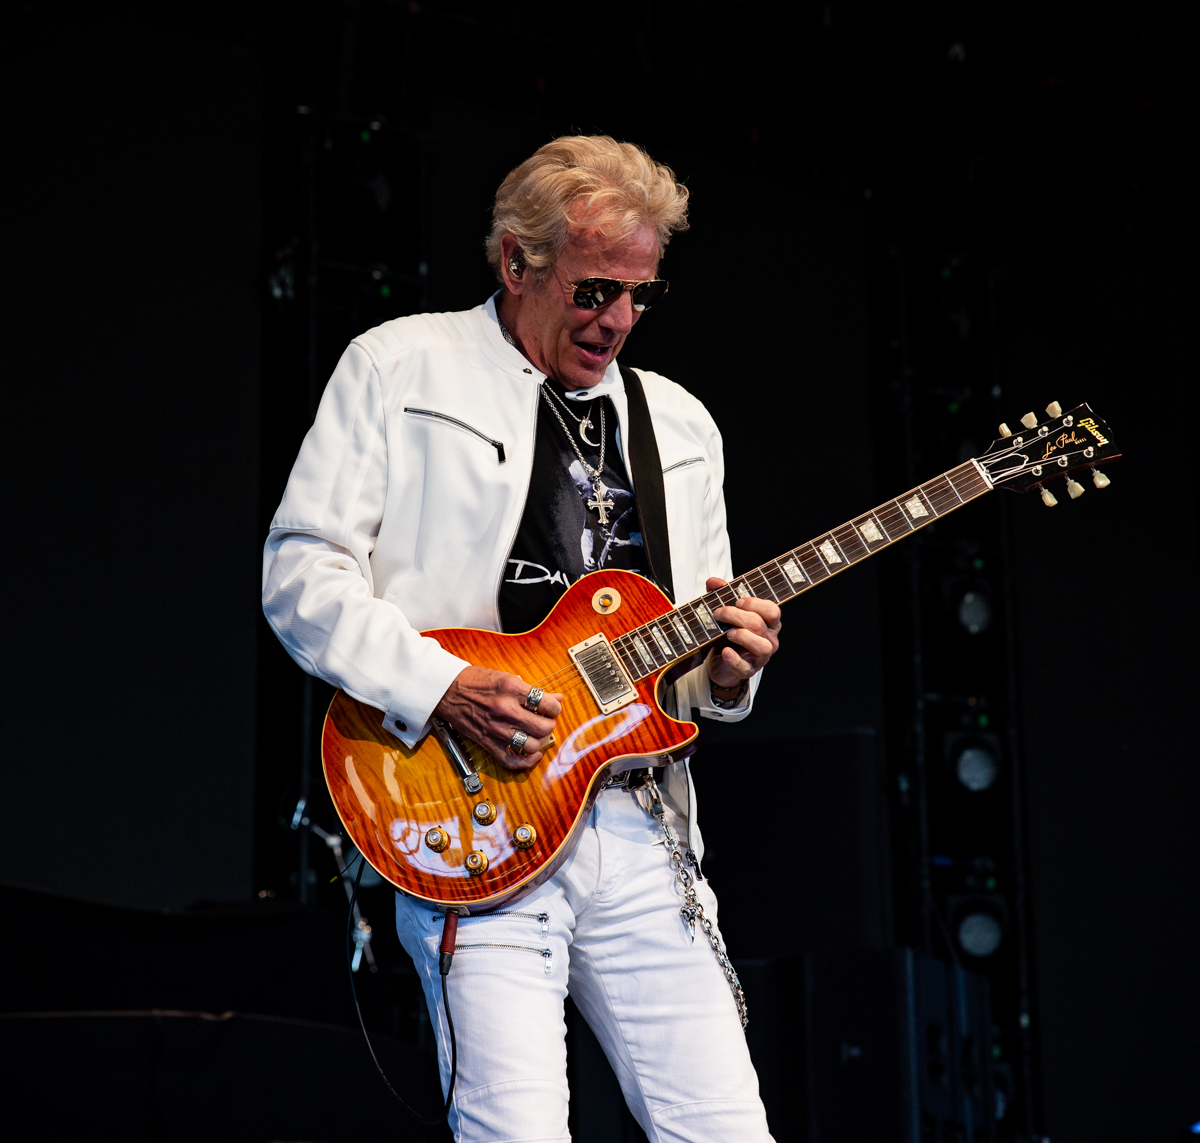 Don Felder performs at Hollywood Casino Amphitheatre in Tinley Park, IL on 06/07/2019.